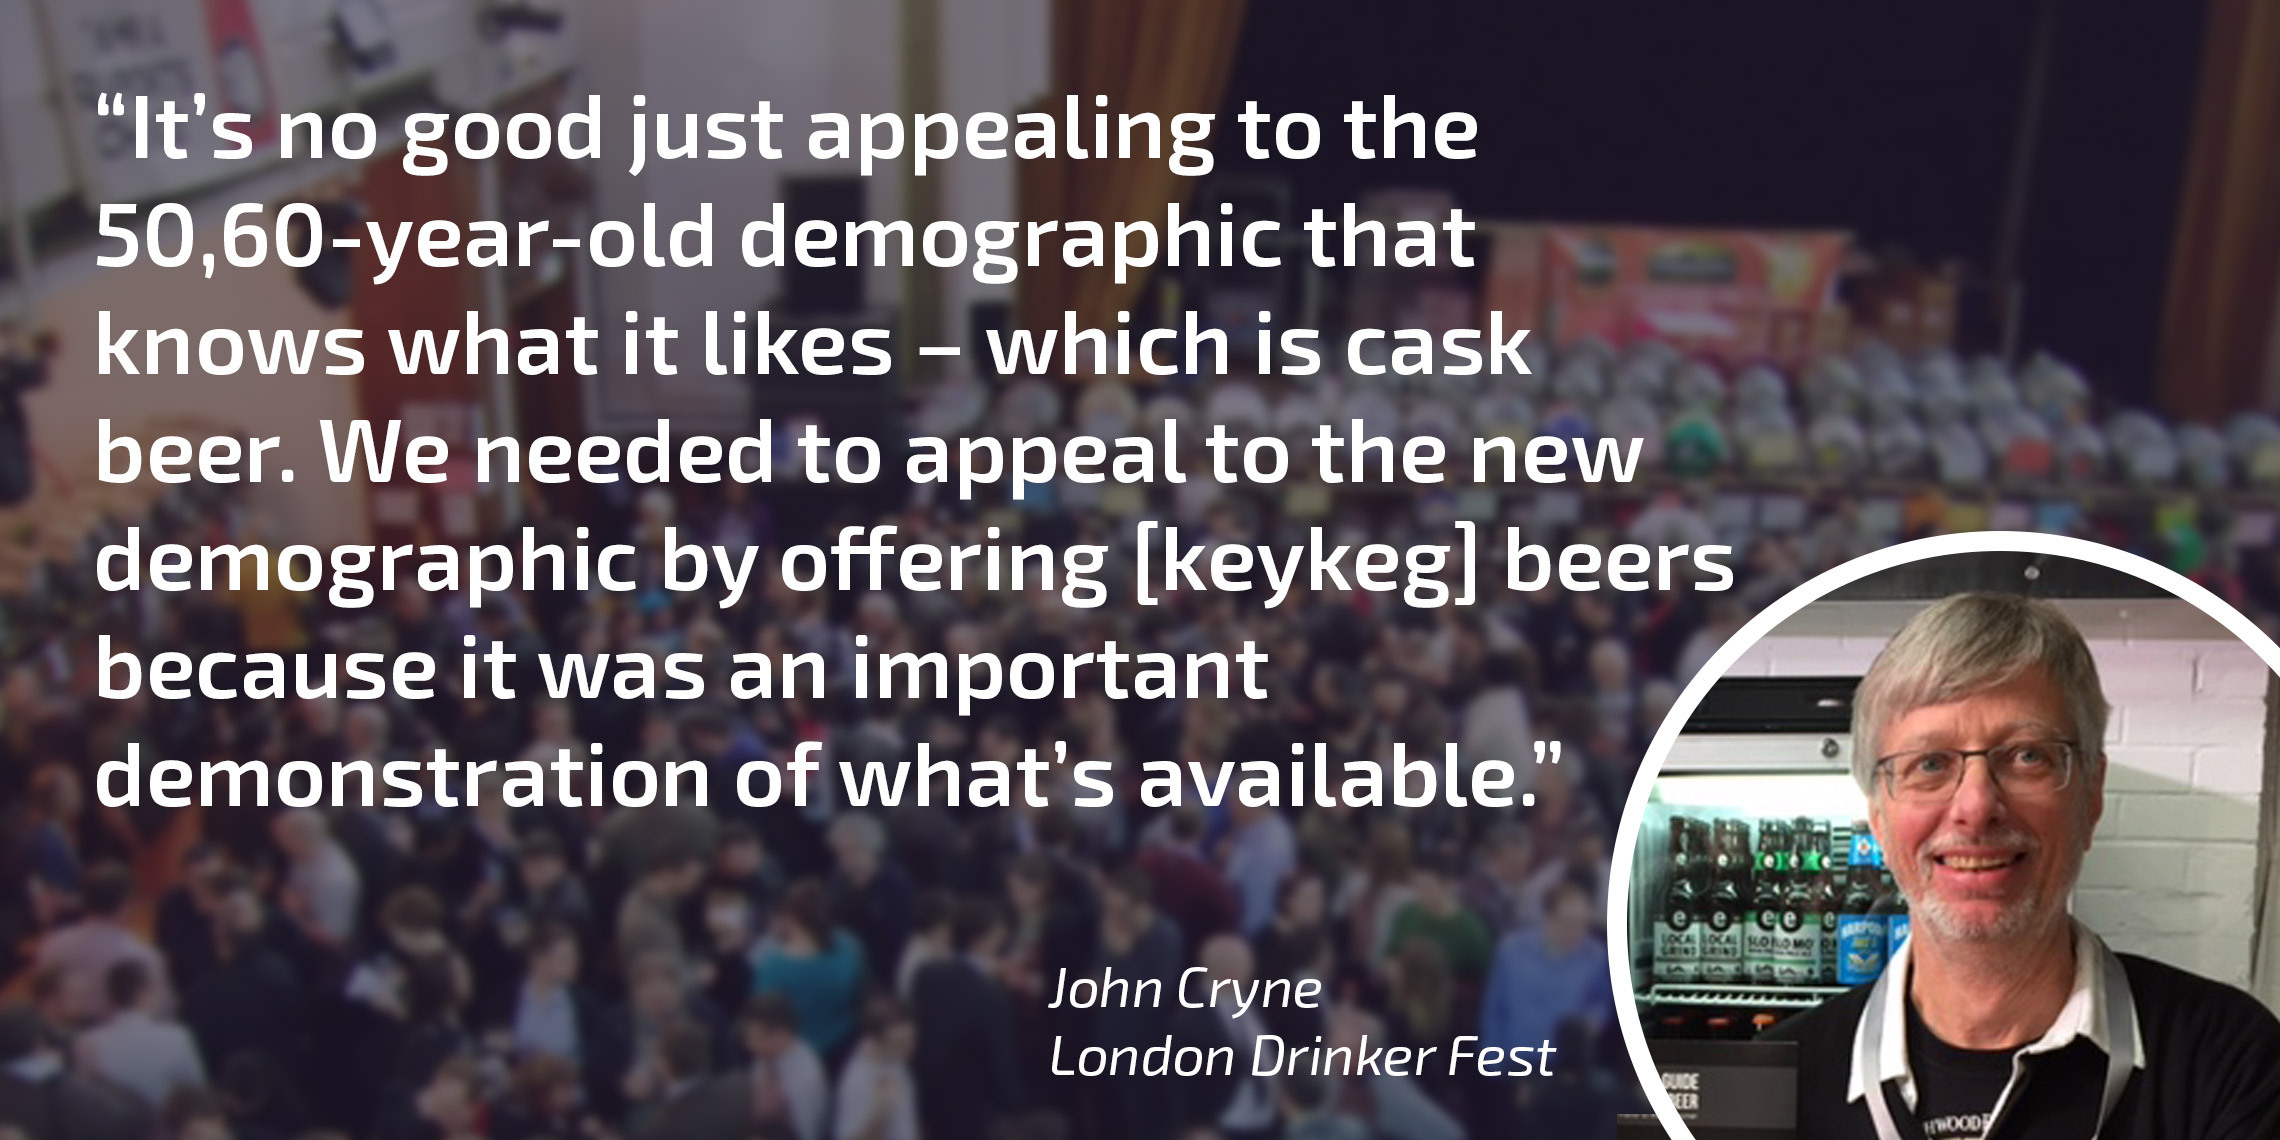 """It's no good just appealing to the 50,60-year-old- demographic that knows what it likes - which is cask beer. We needed to appeal to the new demographic by offering [keykeg] beers because it was an important demonstration of what's available"" - John Cryne, London Drinker Fest"